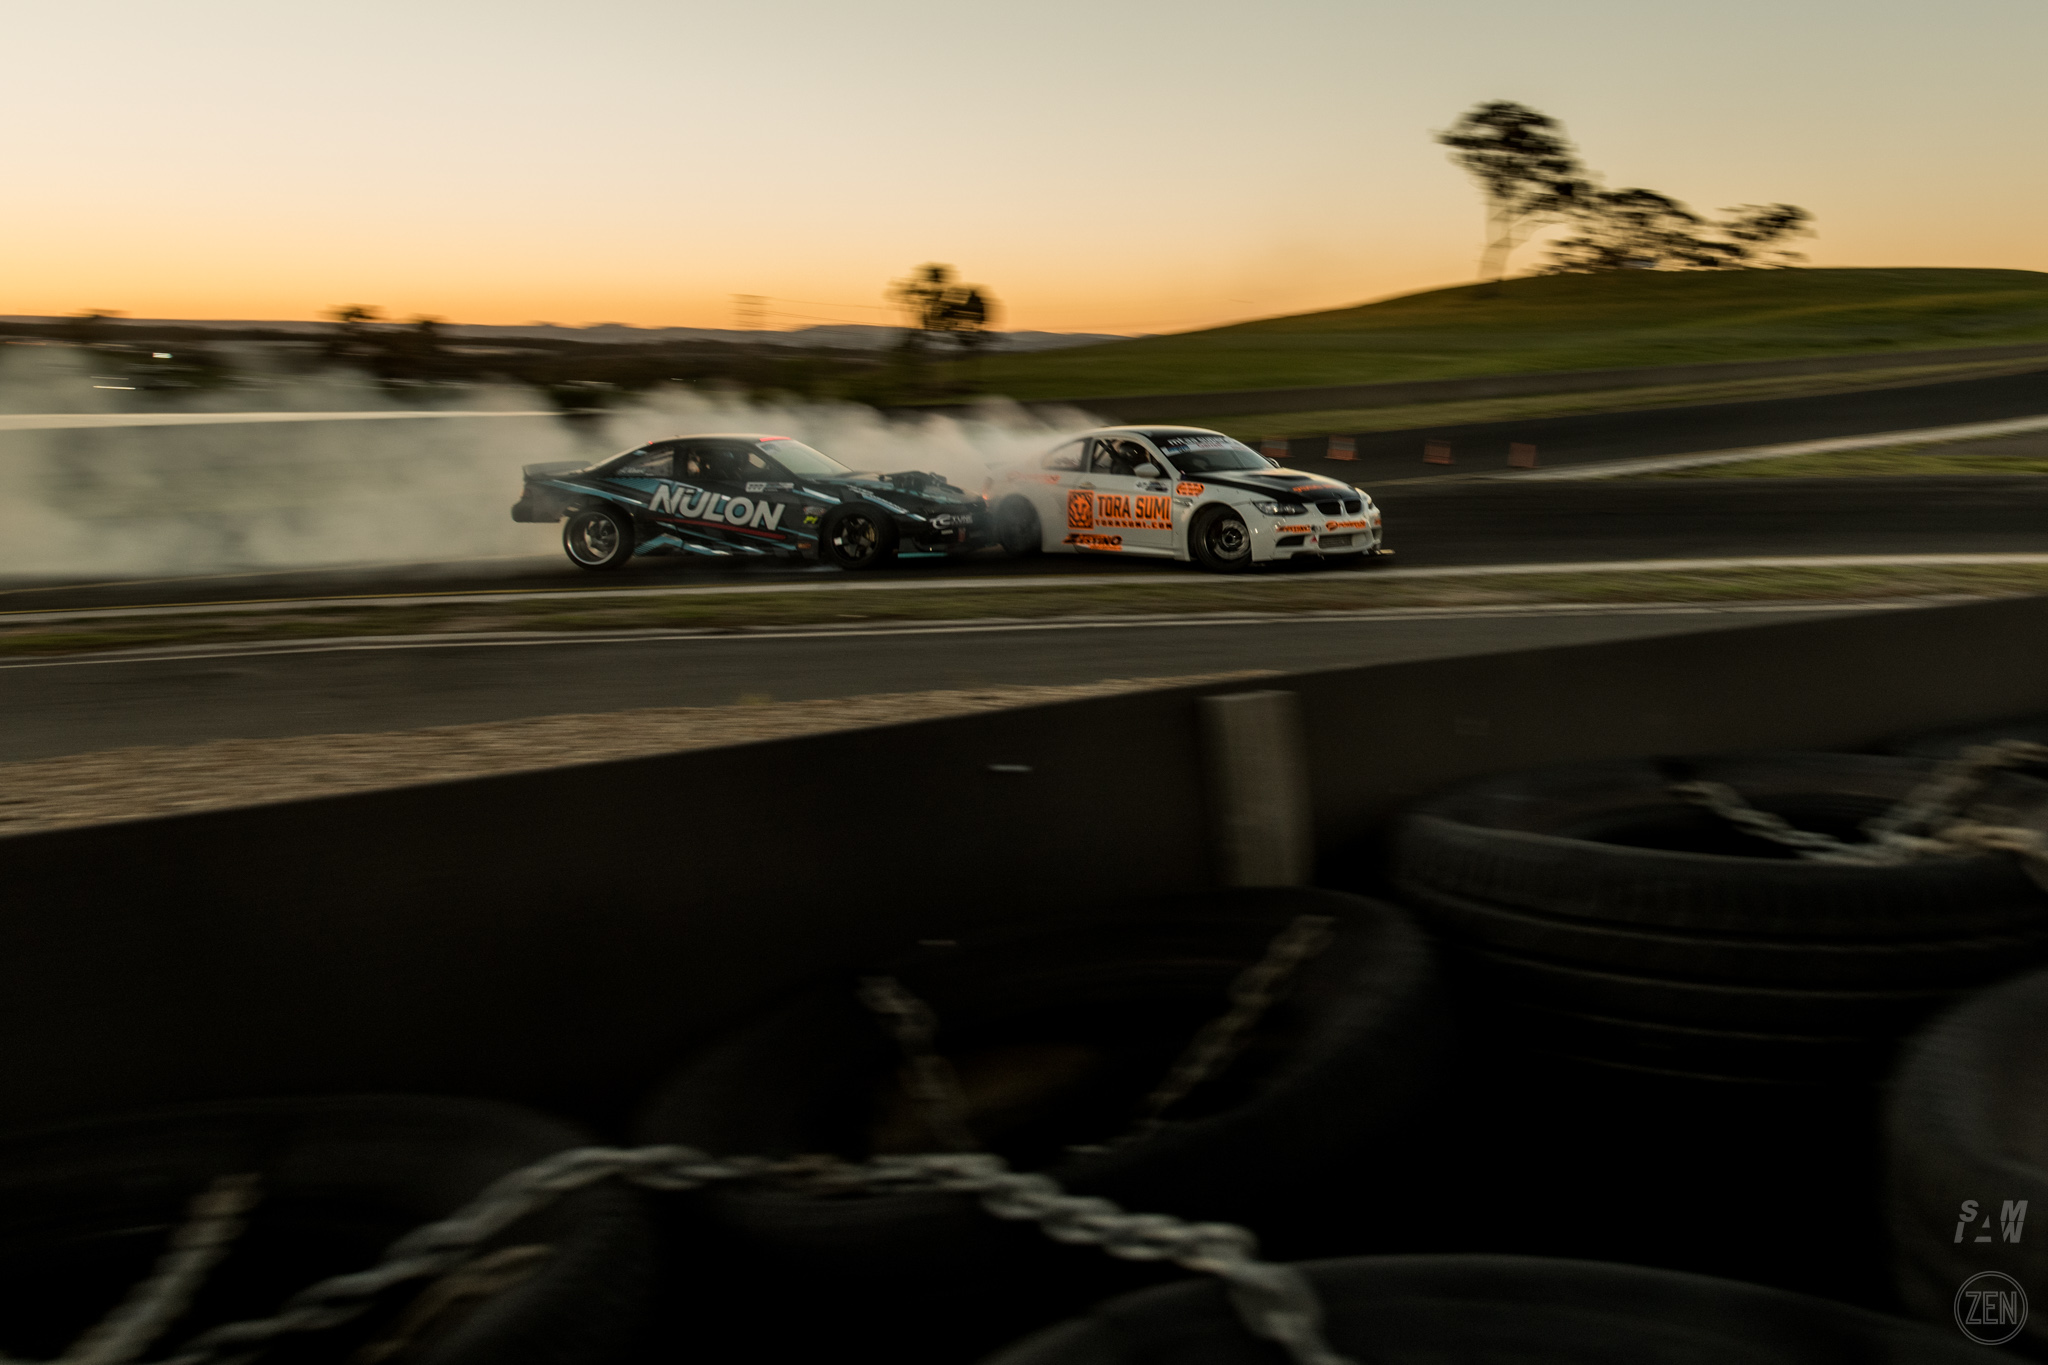 2019-10-18 - WTAC Day 01 069